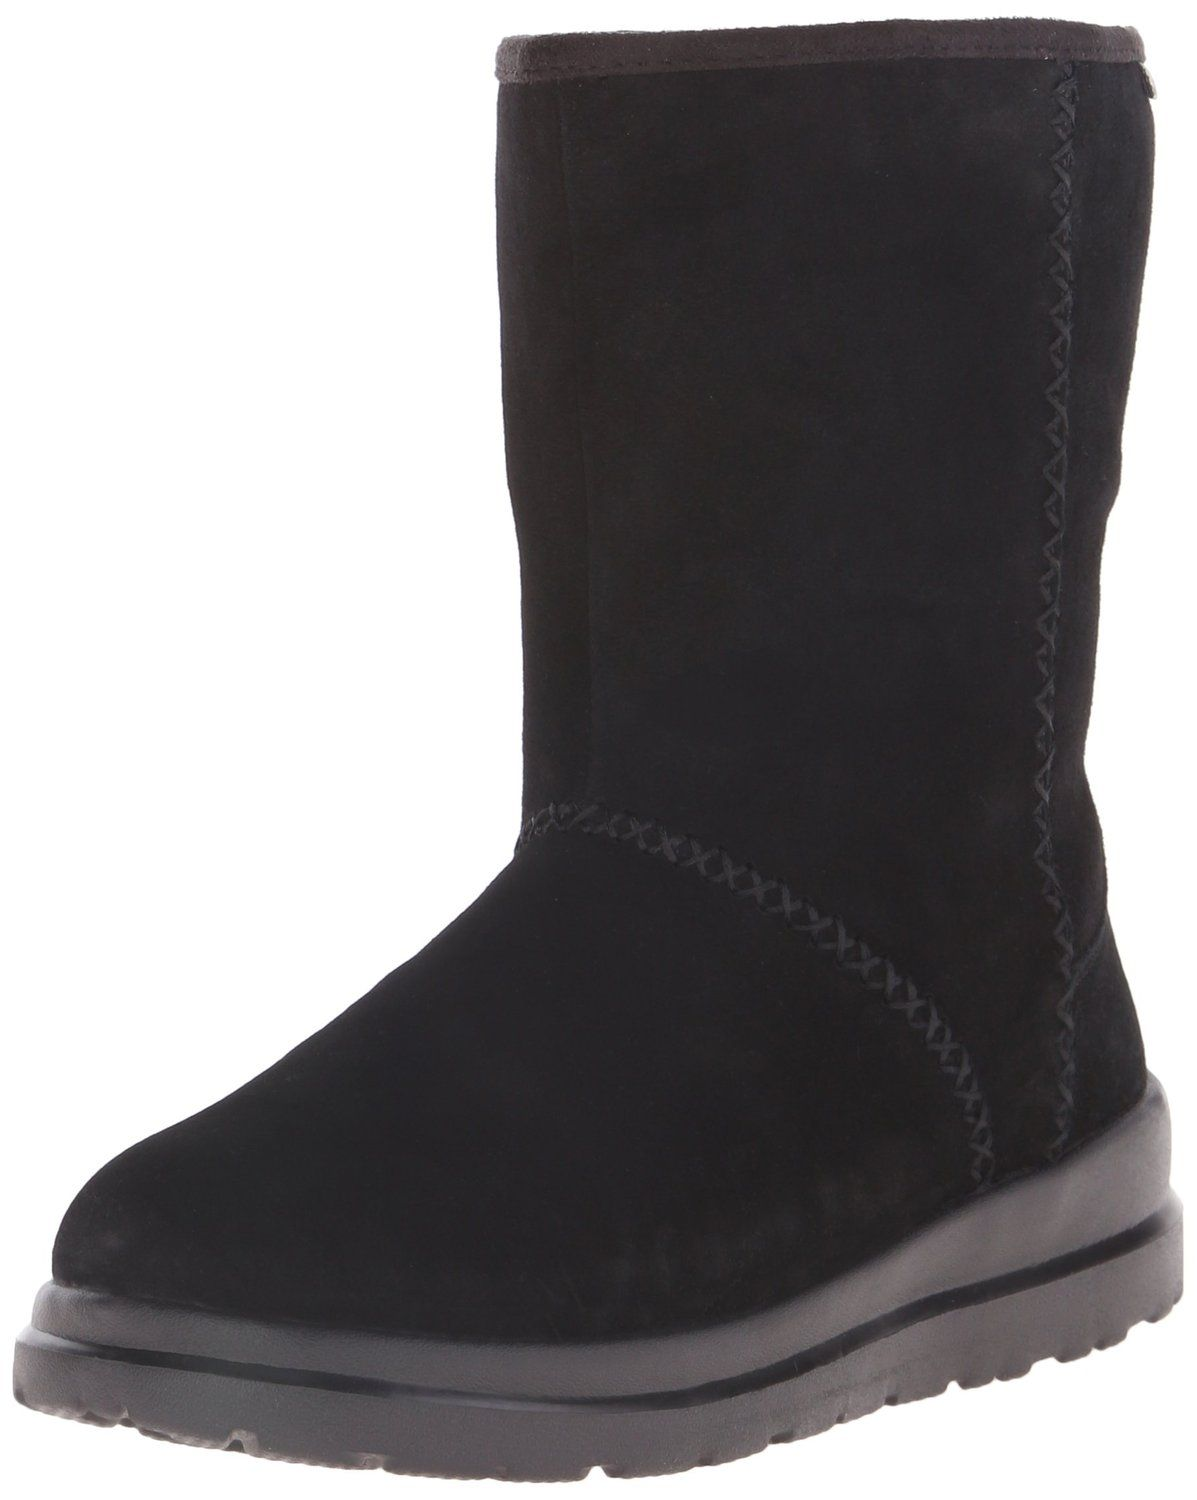 51a84d79bb14 Skechers Women s Cherish-Just Because Winter Boot   Additional details  found at the image link